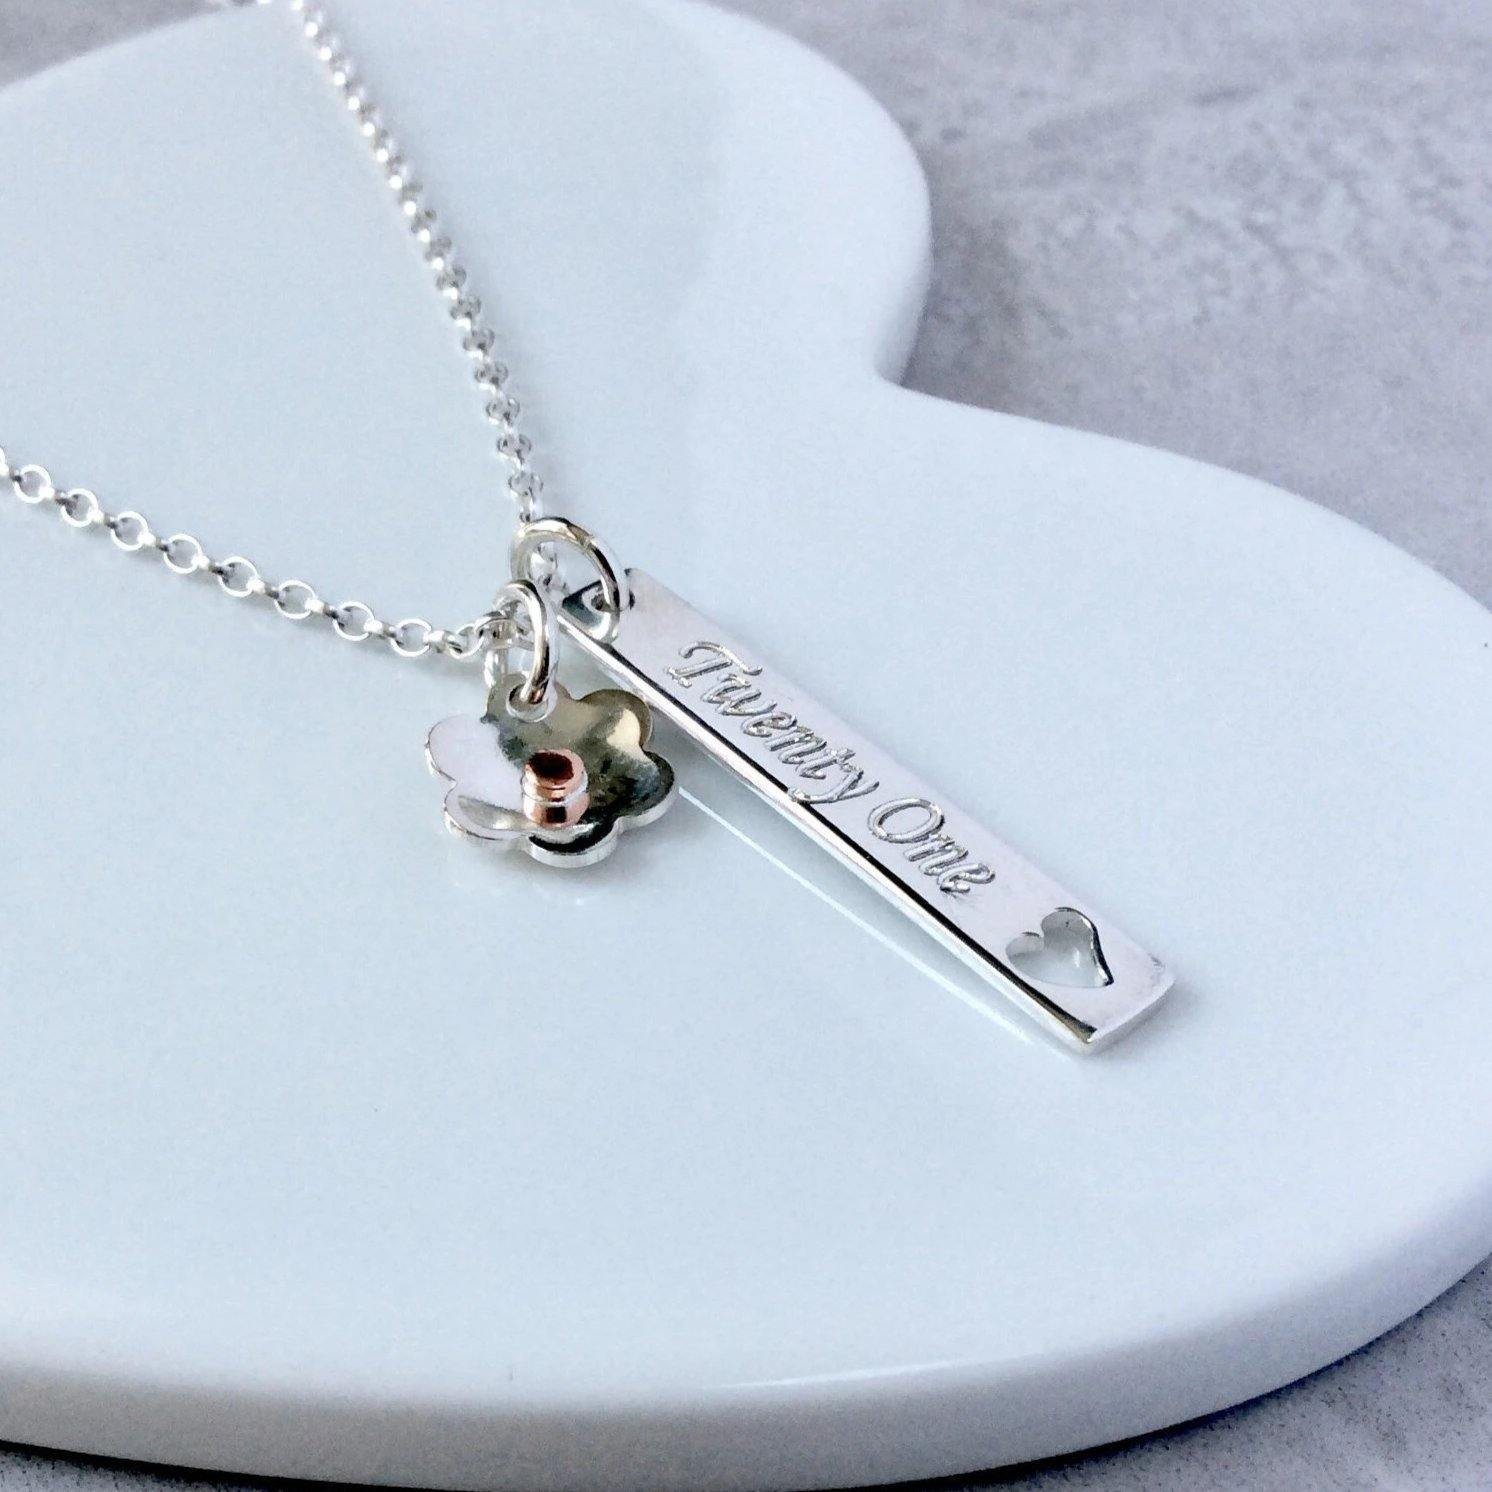 21st birthday necklace with name engraved on the back - Tracy Anne Jewellery